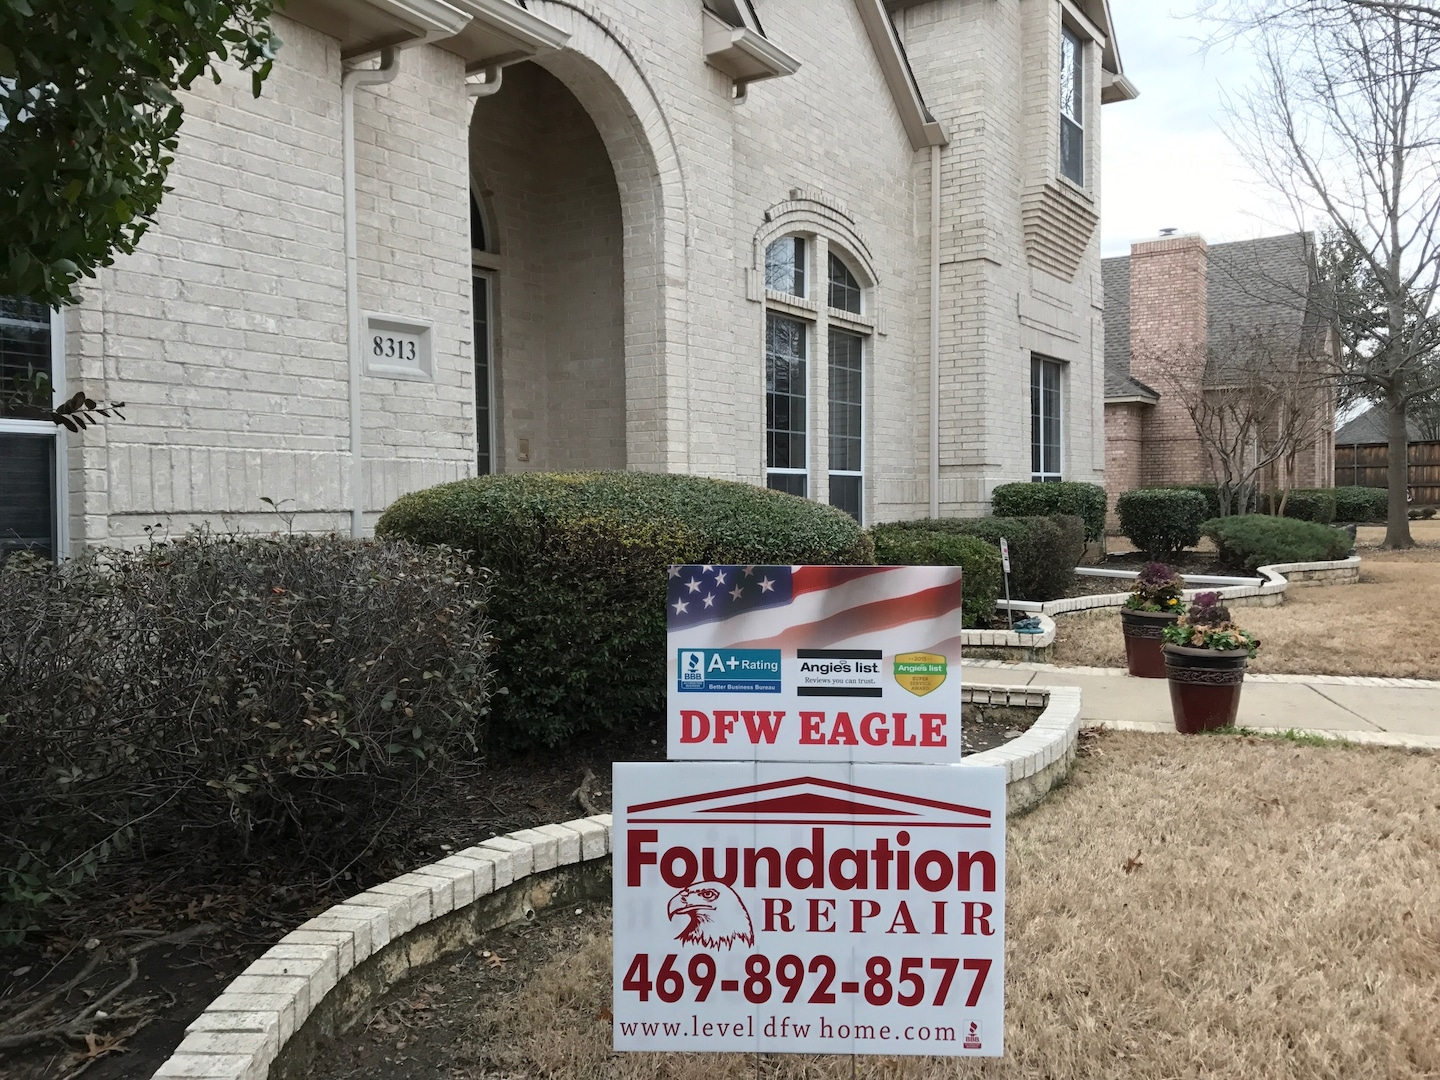 DFW Eagle Foundation Repair Inc logo